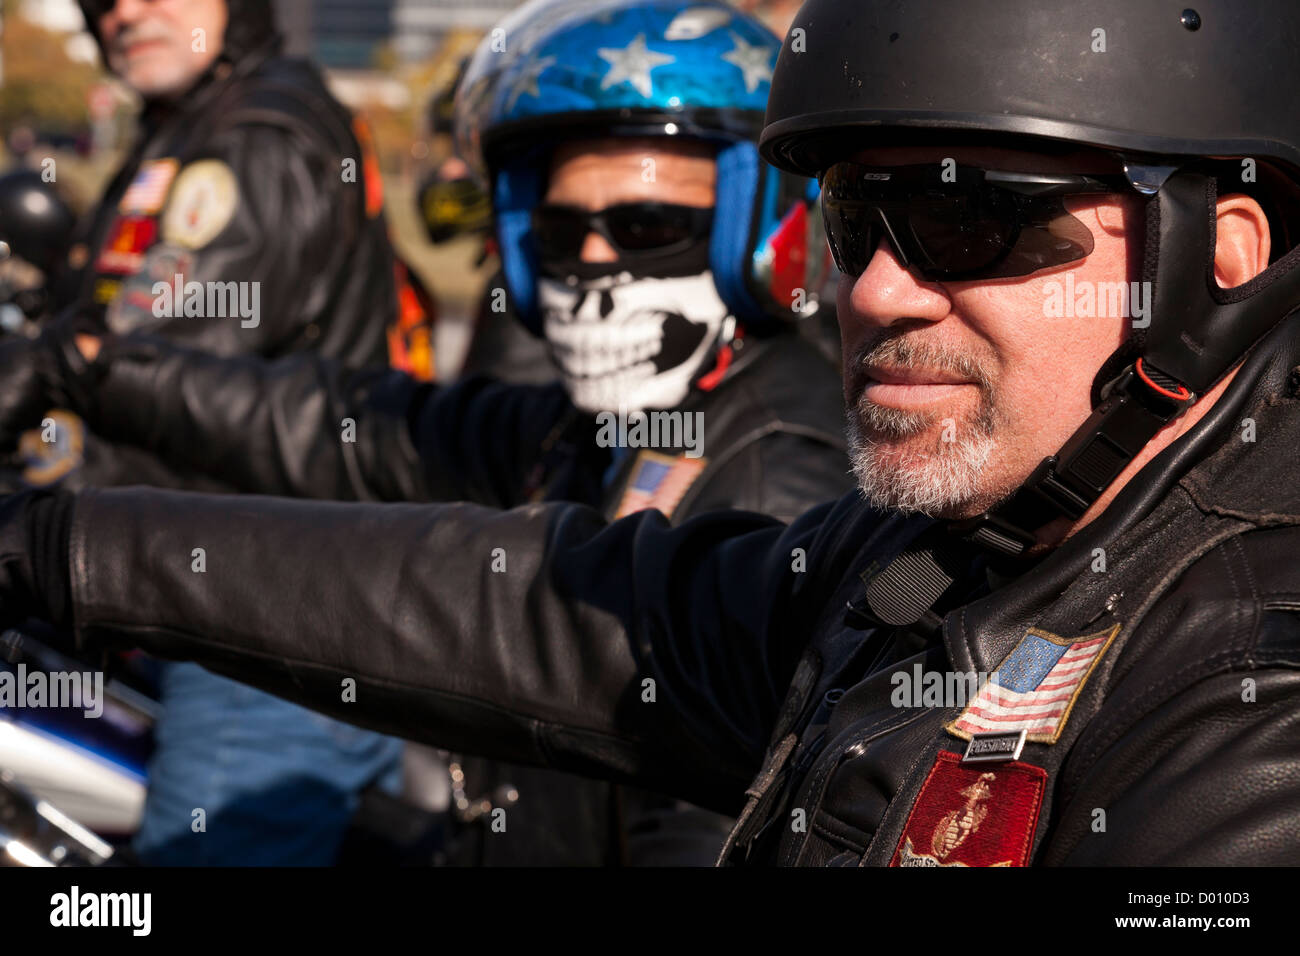 Harley Davidson motorcycle club members - Stock Image